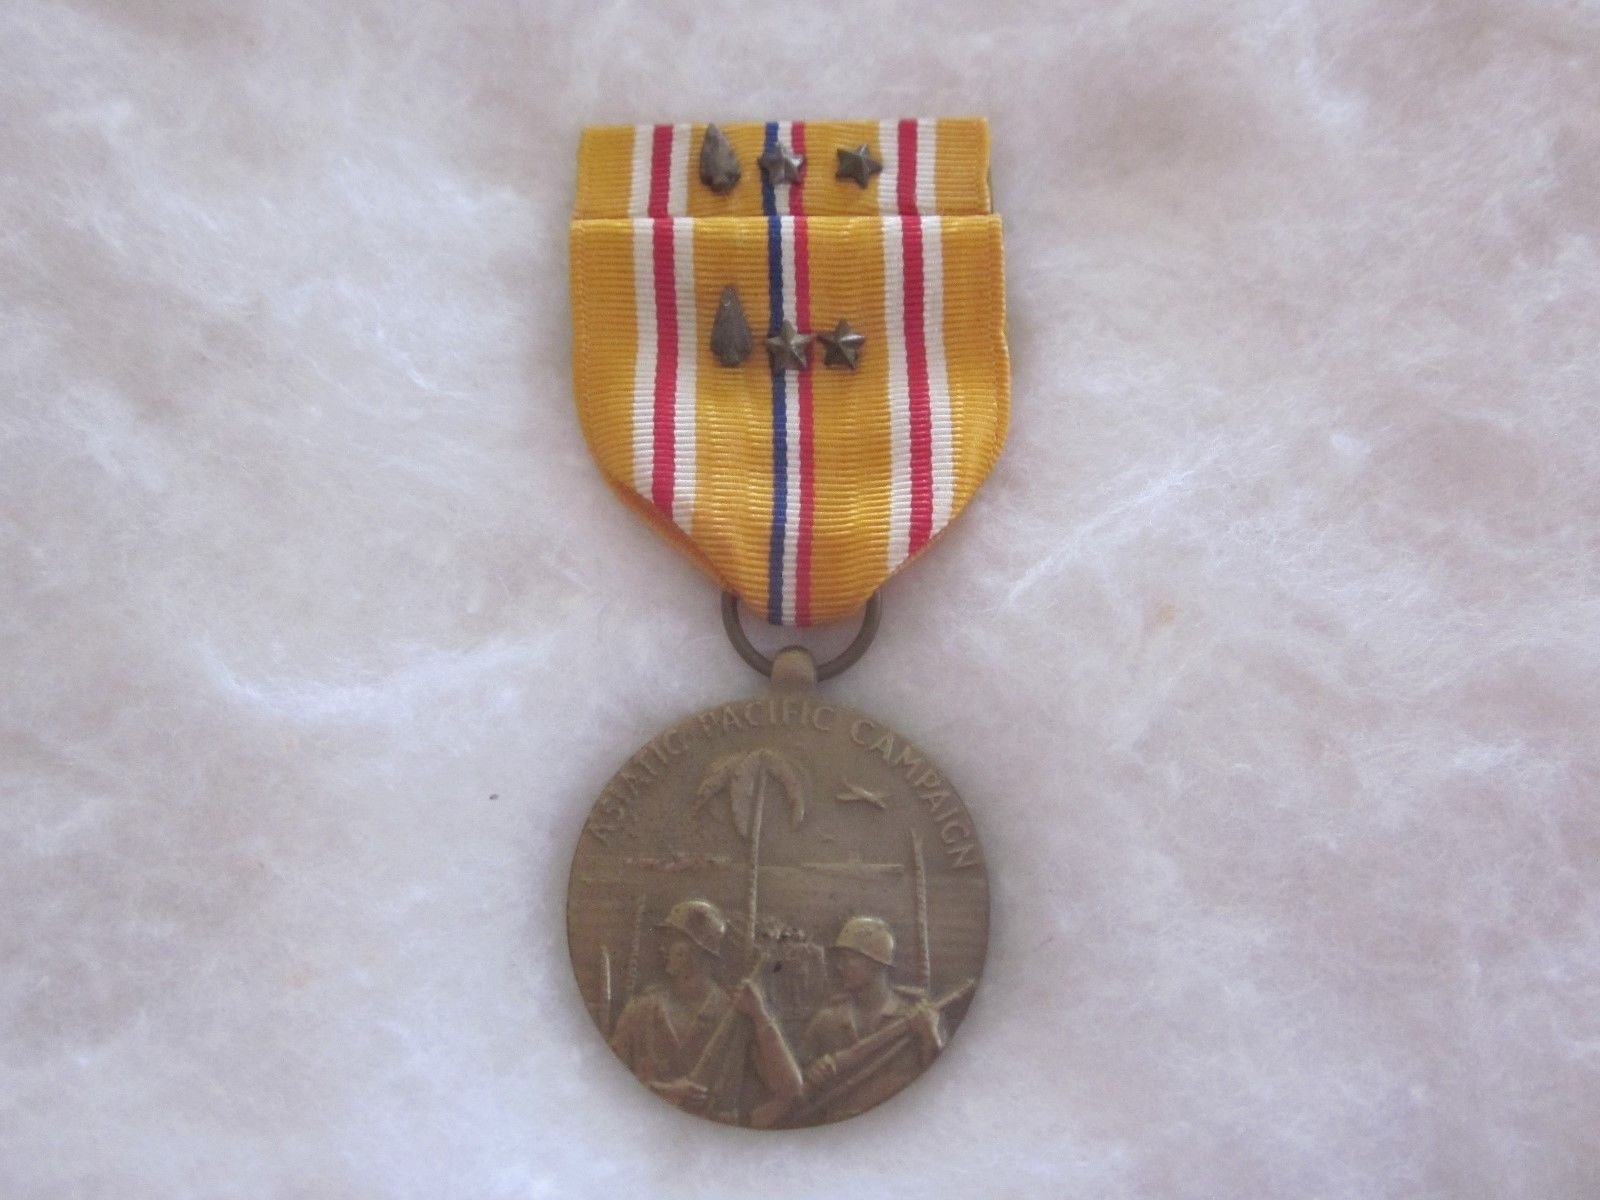 Asiatic-Pacific Campaign Medal, 1941-1946, with ribbon bar, both with spearhead and two star citations